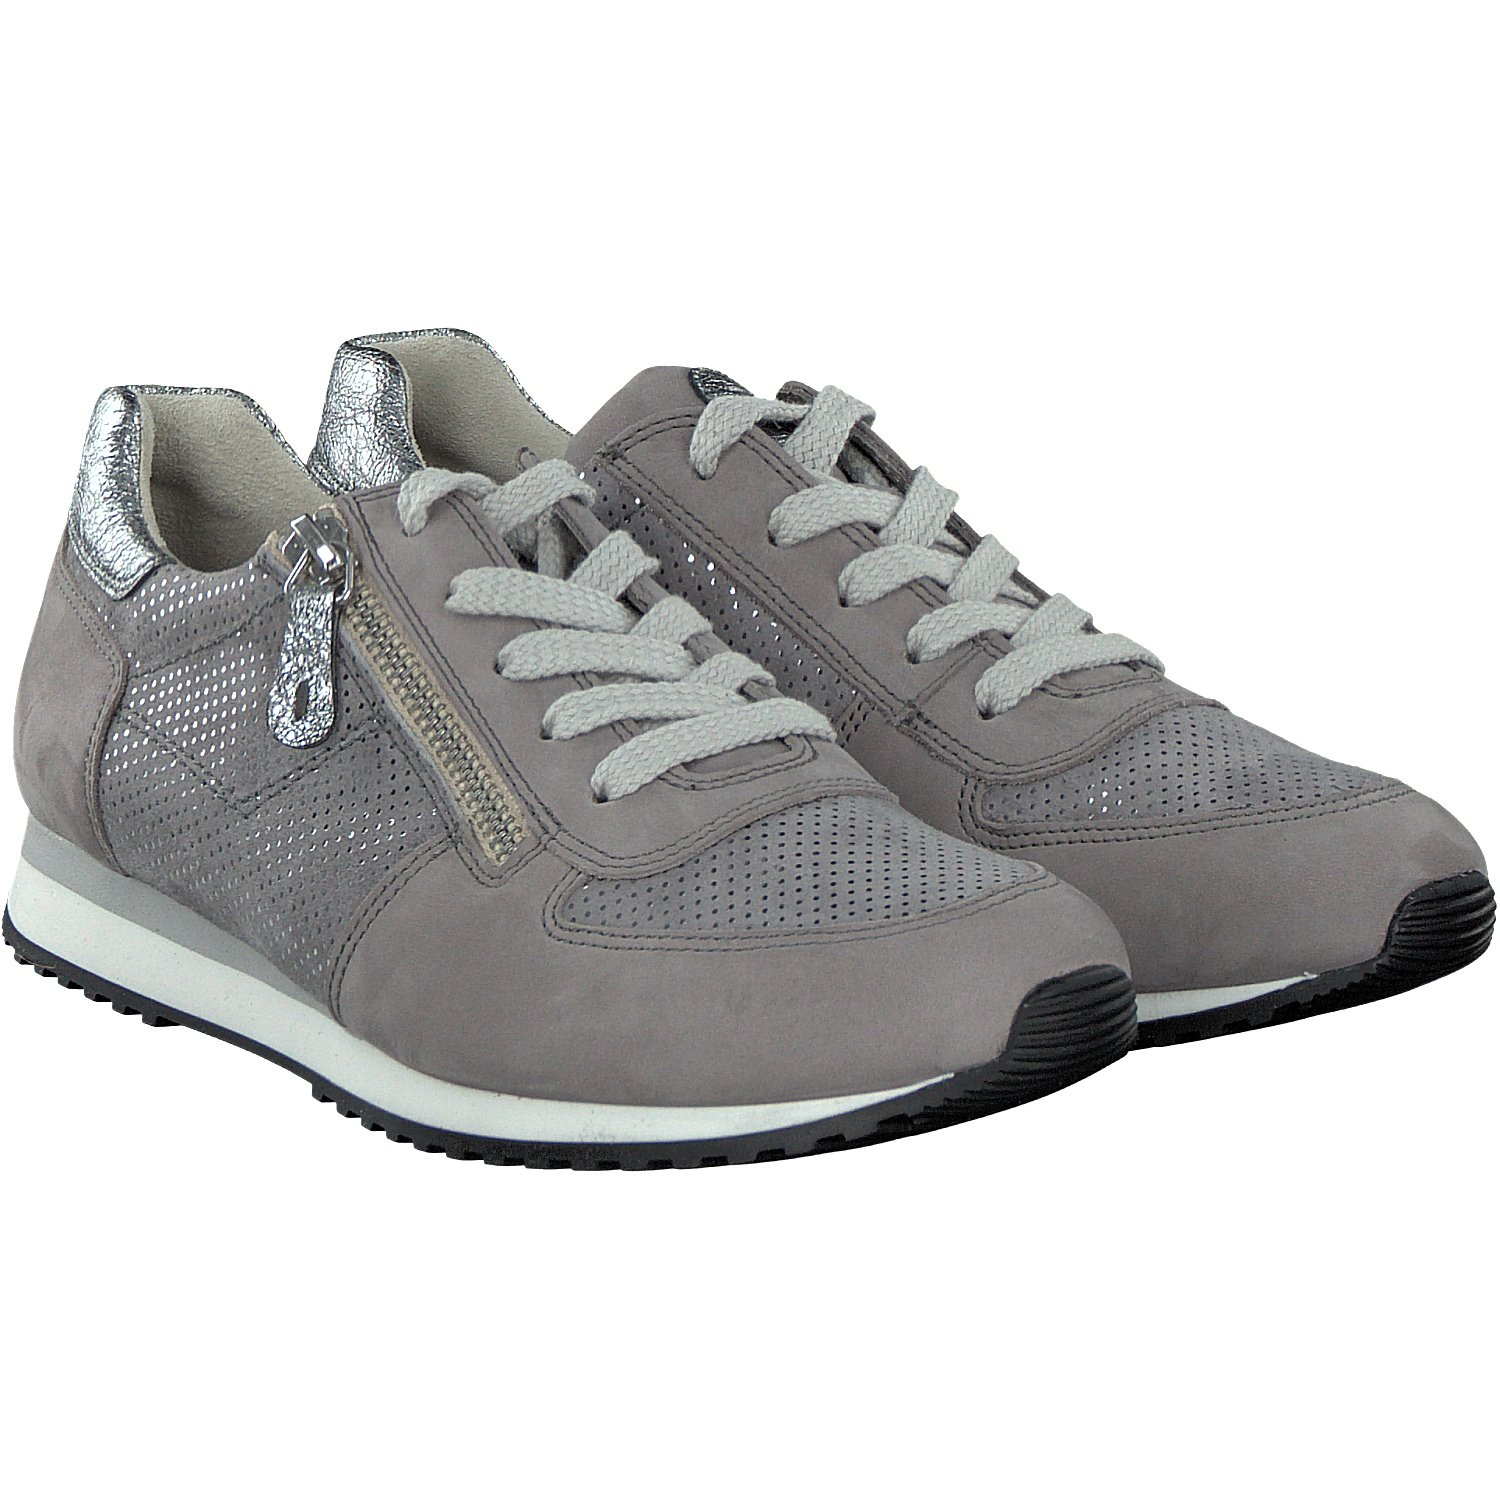 Paul Green Trainer Shoe - 4252 7.5|gris